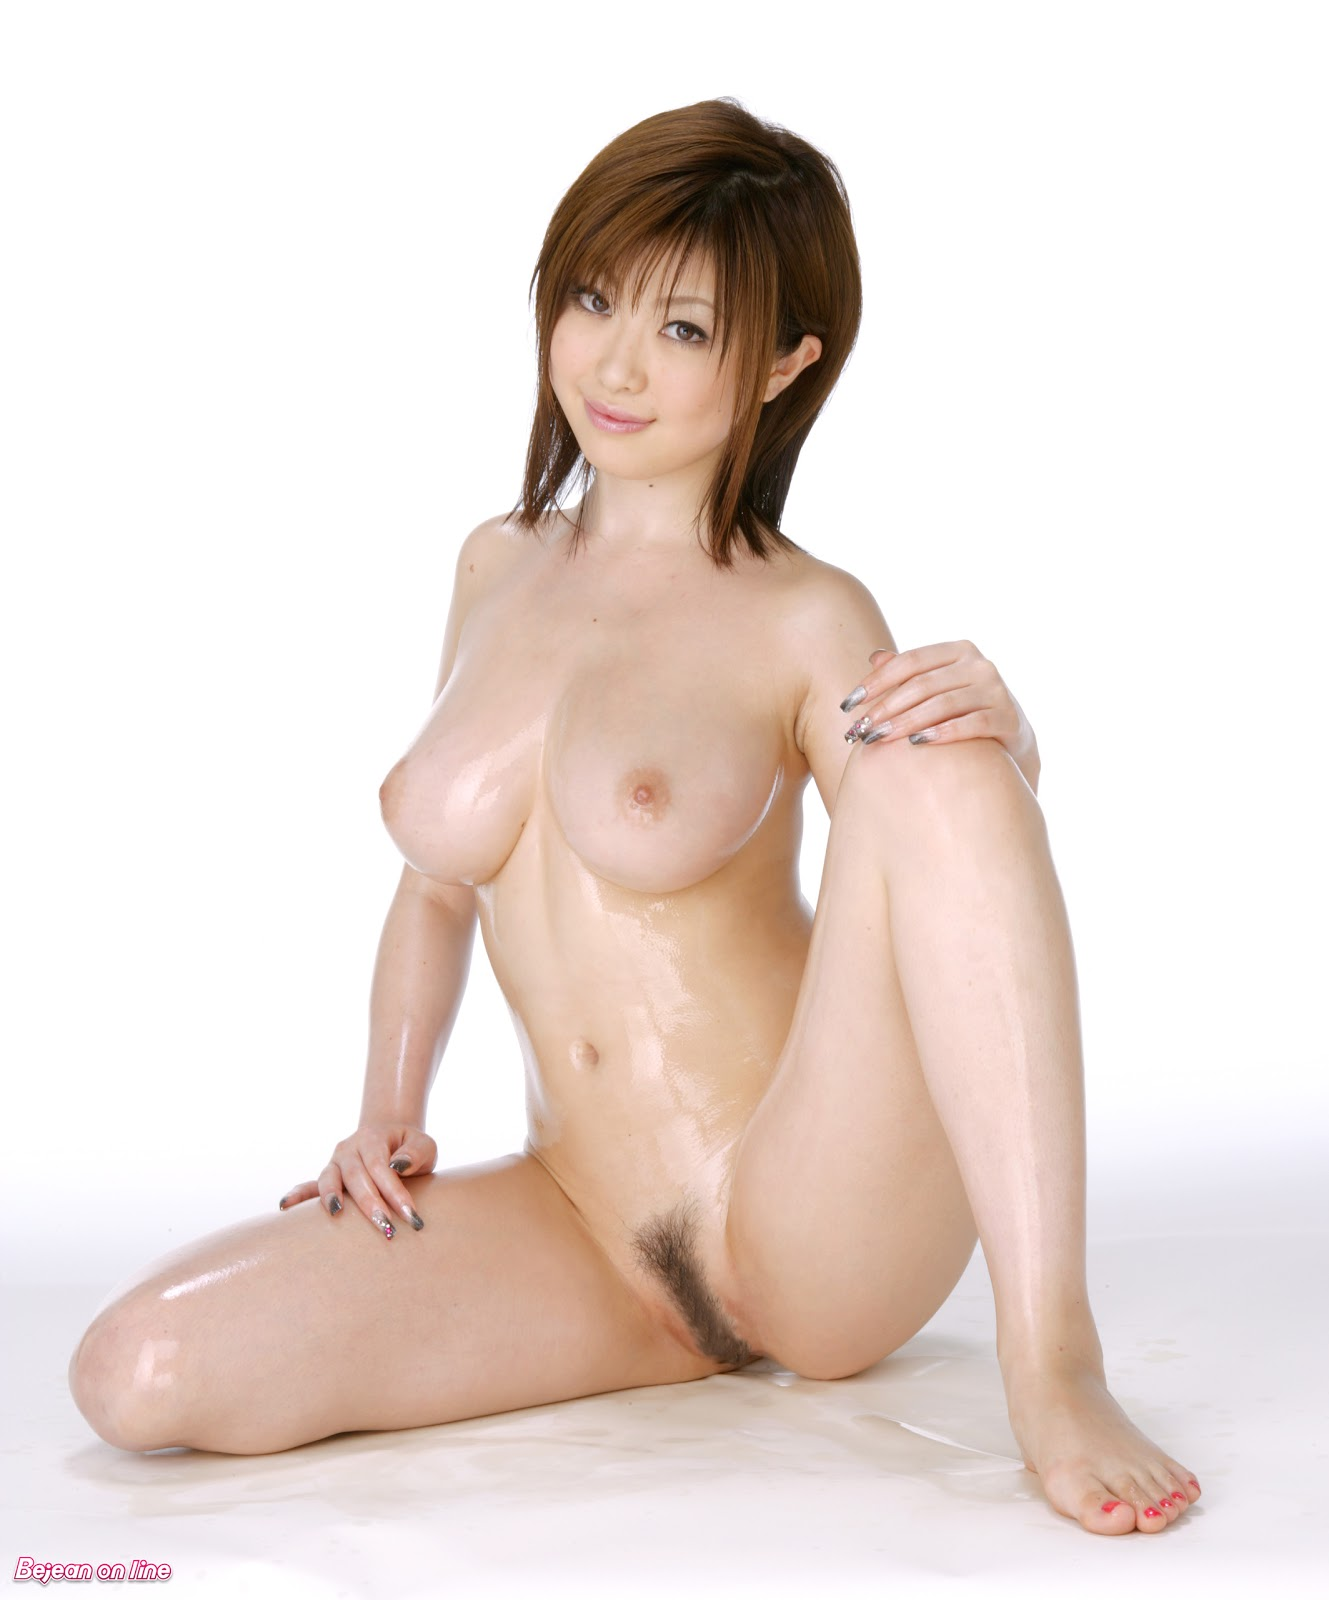 Adult picture of asian girl